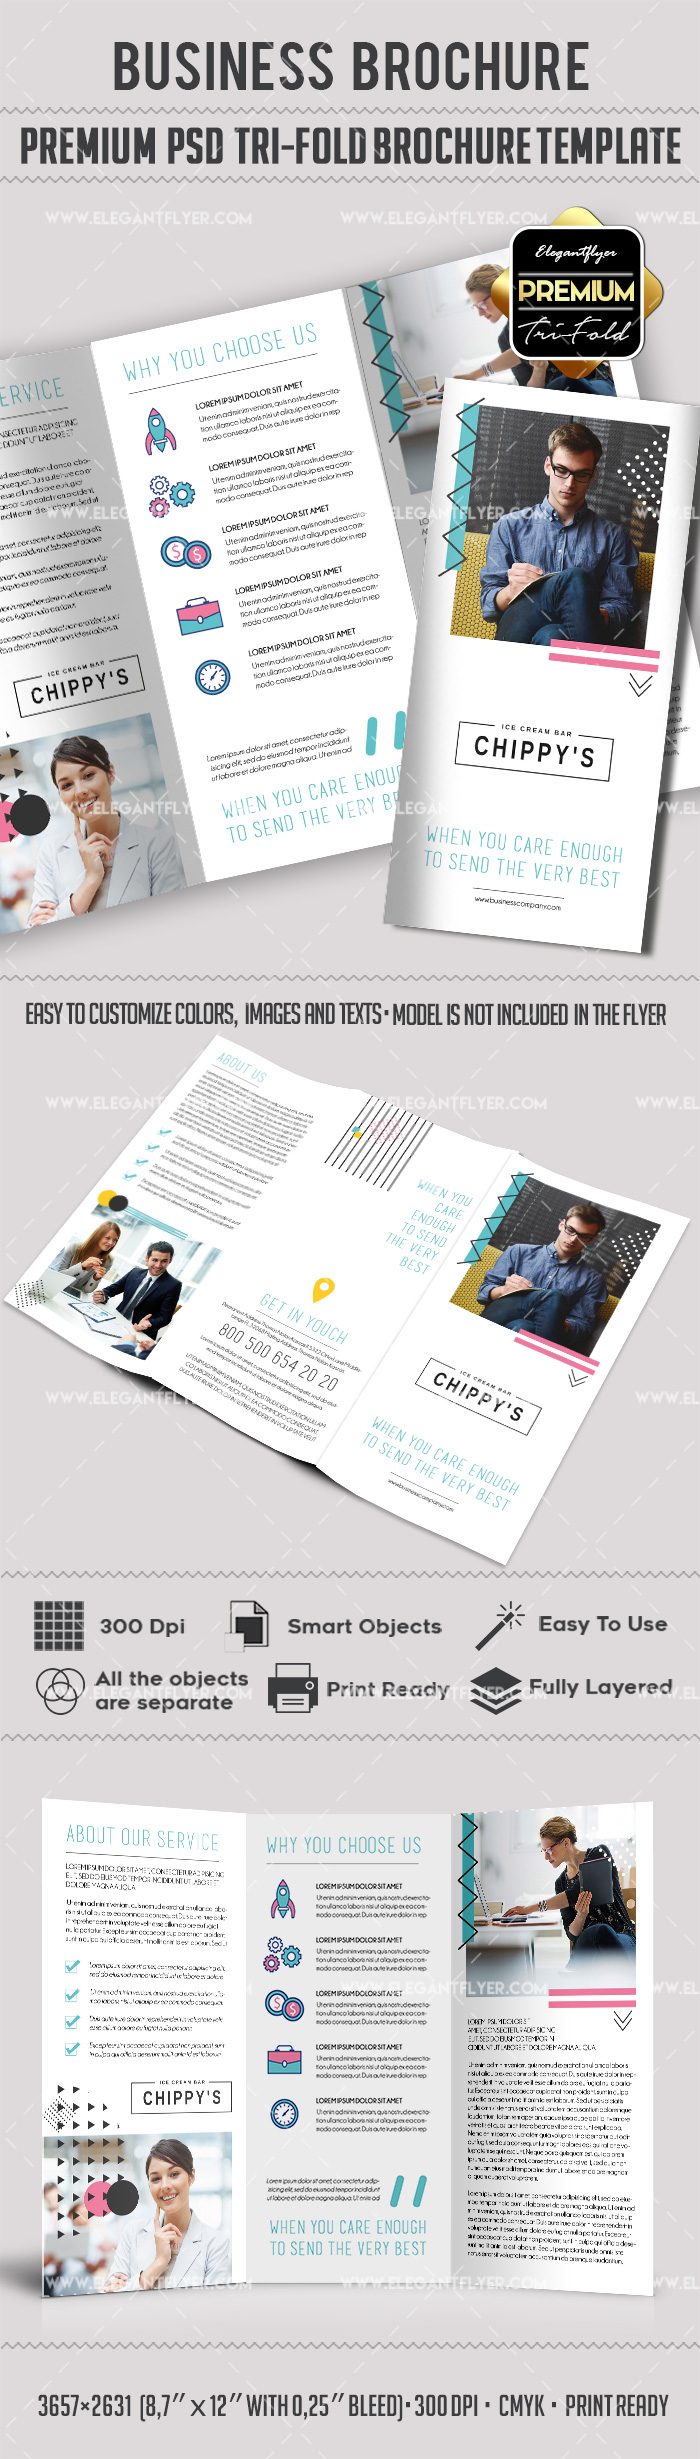 Business – Premium Tri-Fold PSD Brochure Template